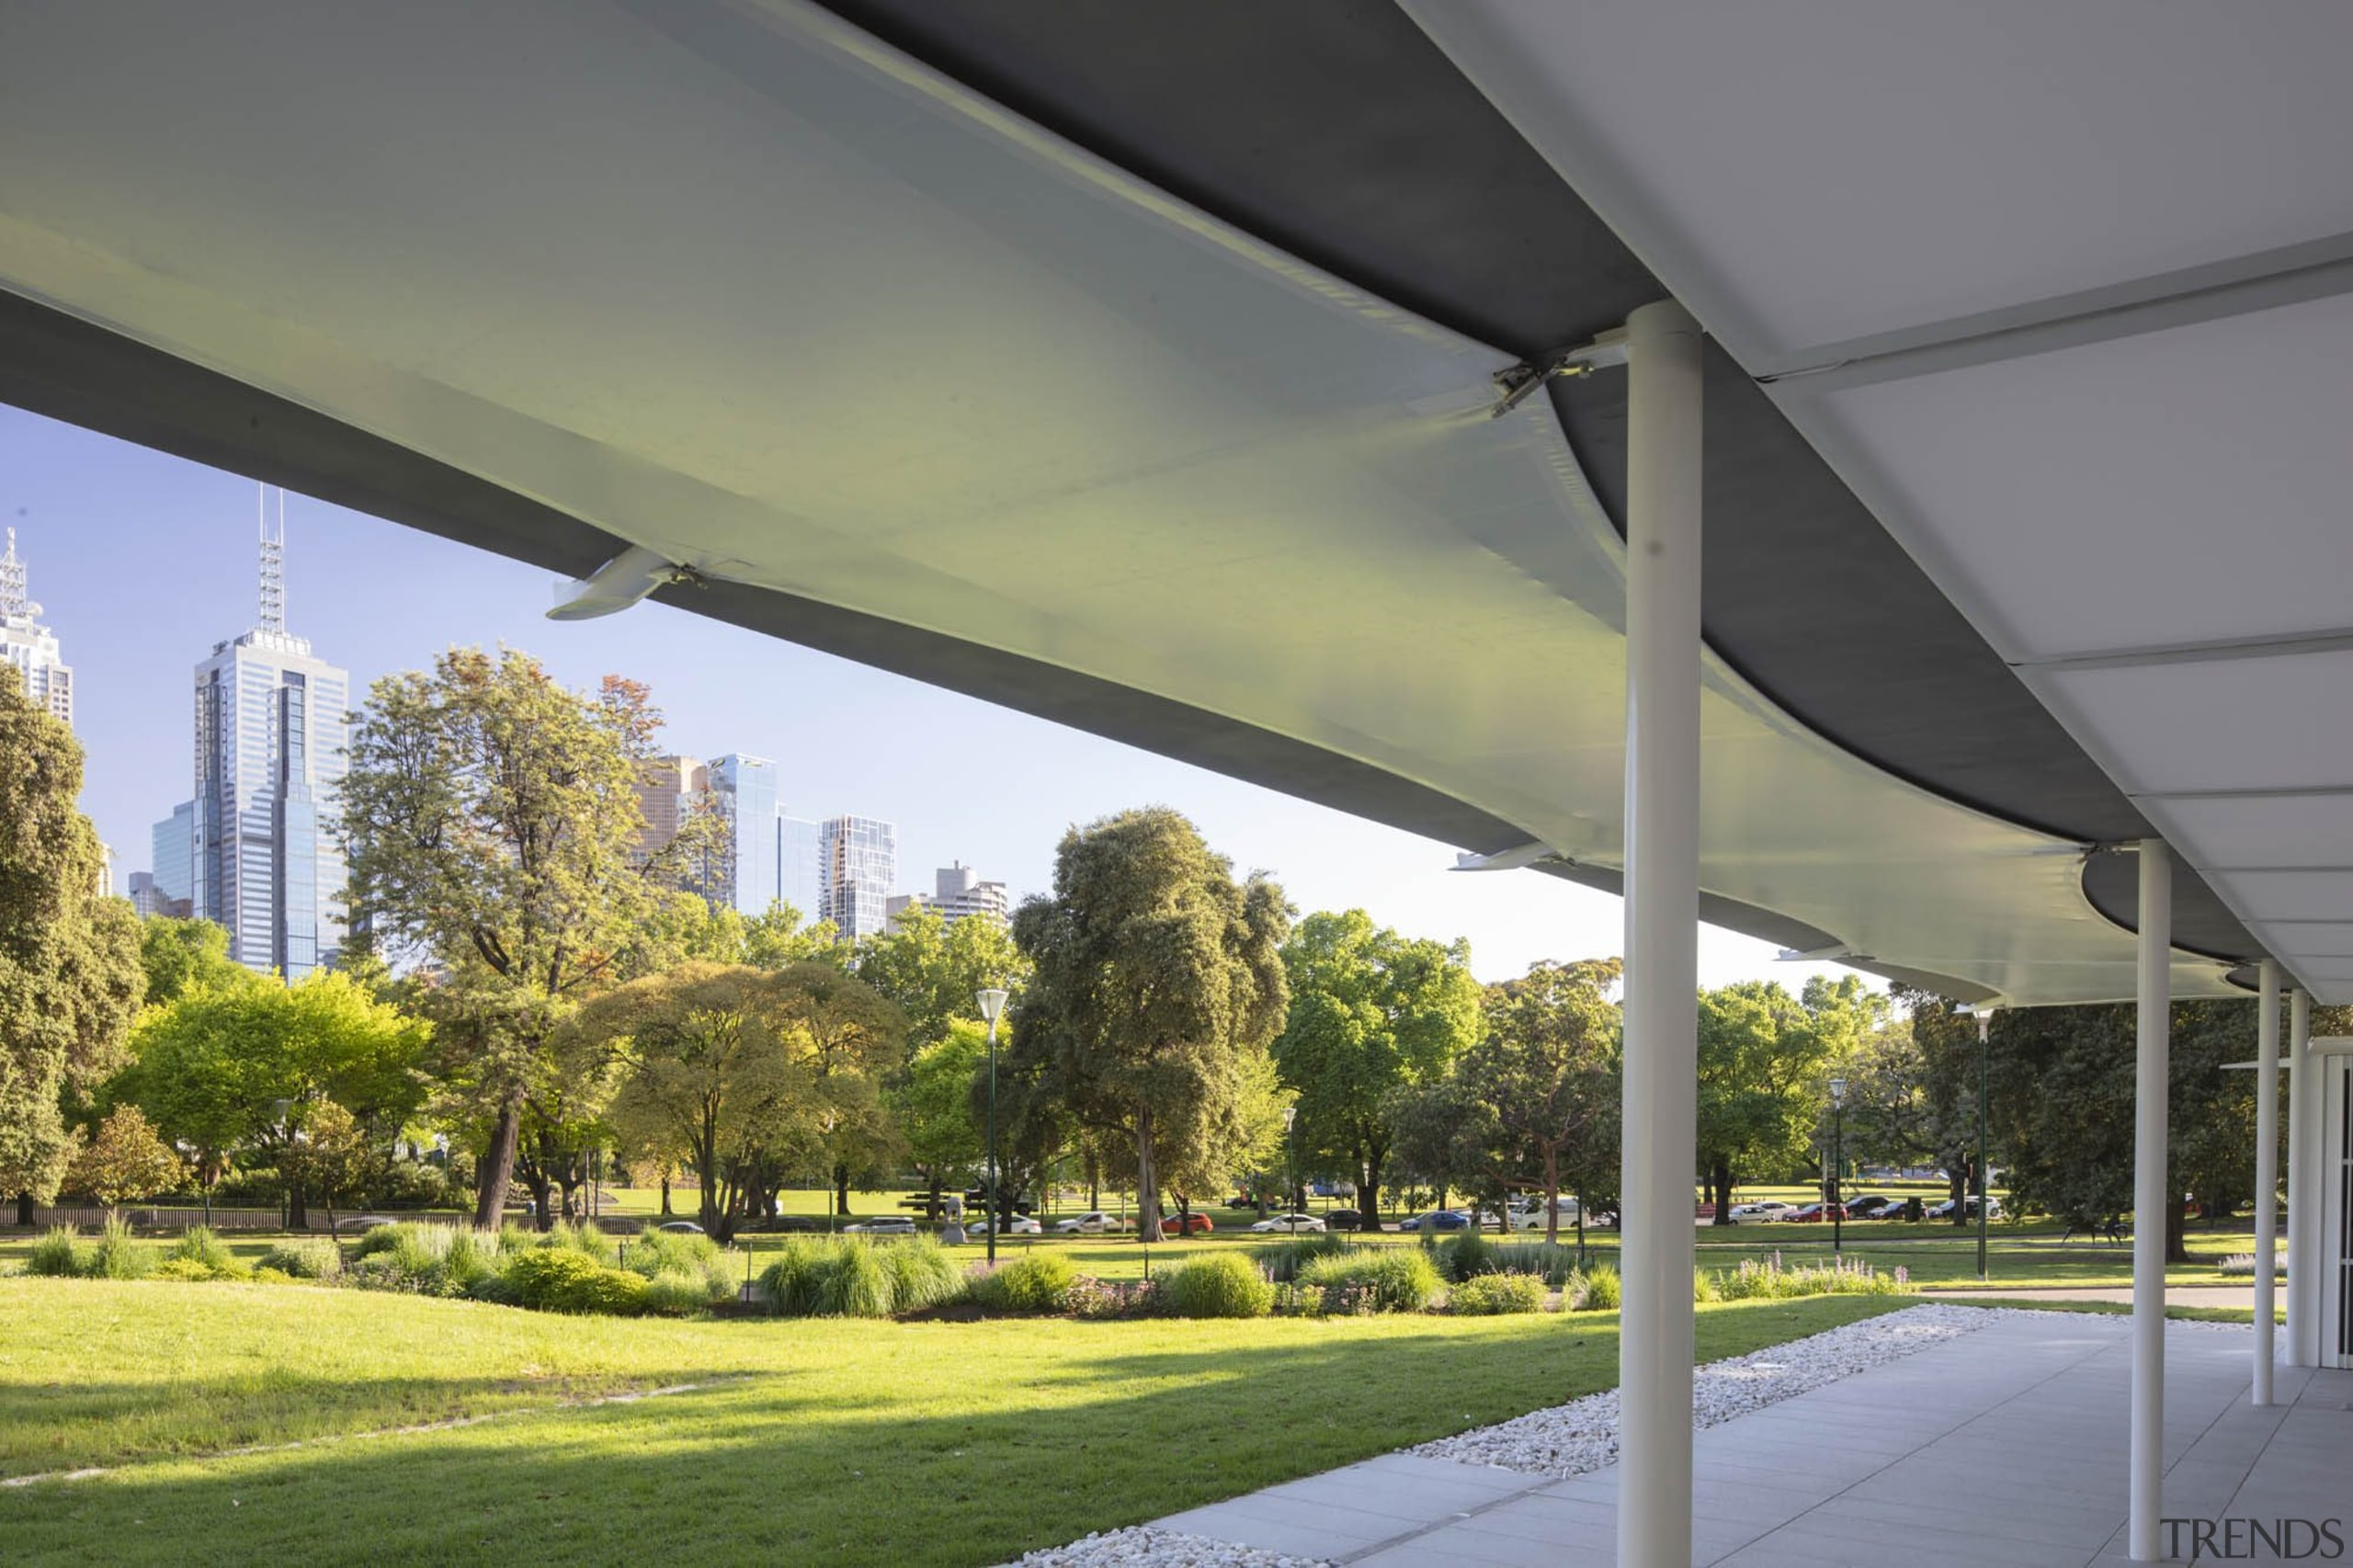 """""""I thought that the pavilion needed to address architecture, building, canopy, grass, real estate, shade, tree, gray"""